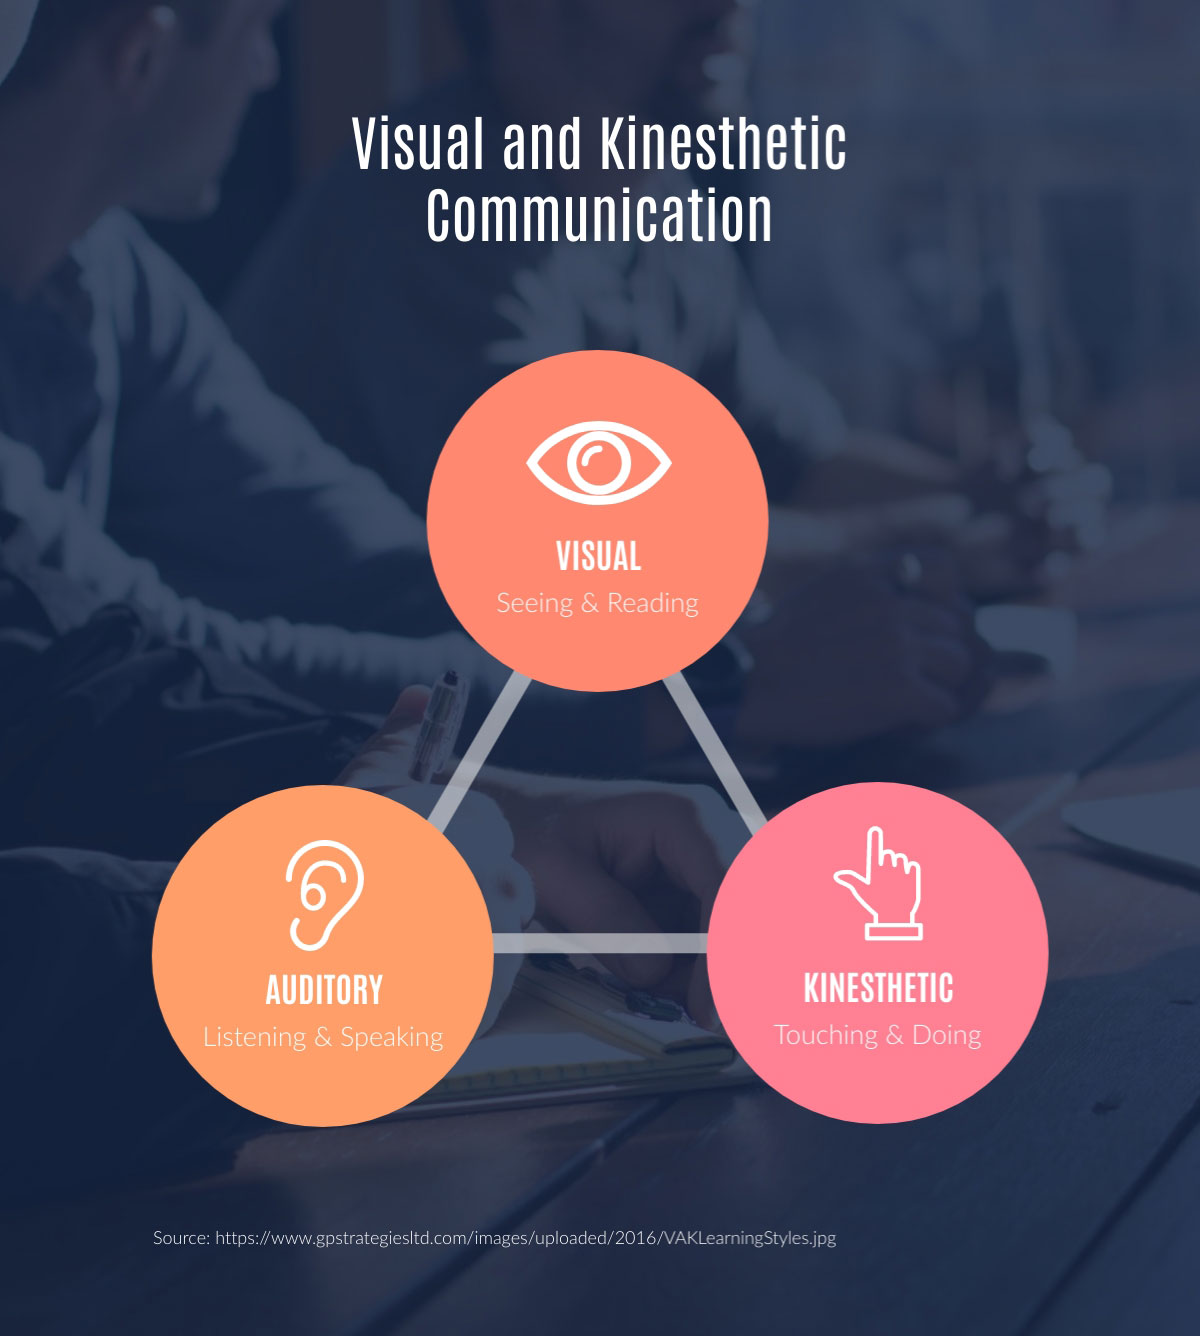 visual communication - visual and kinesthetic communication